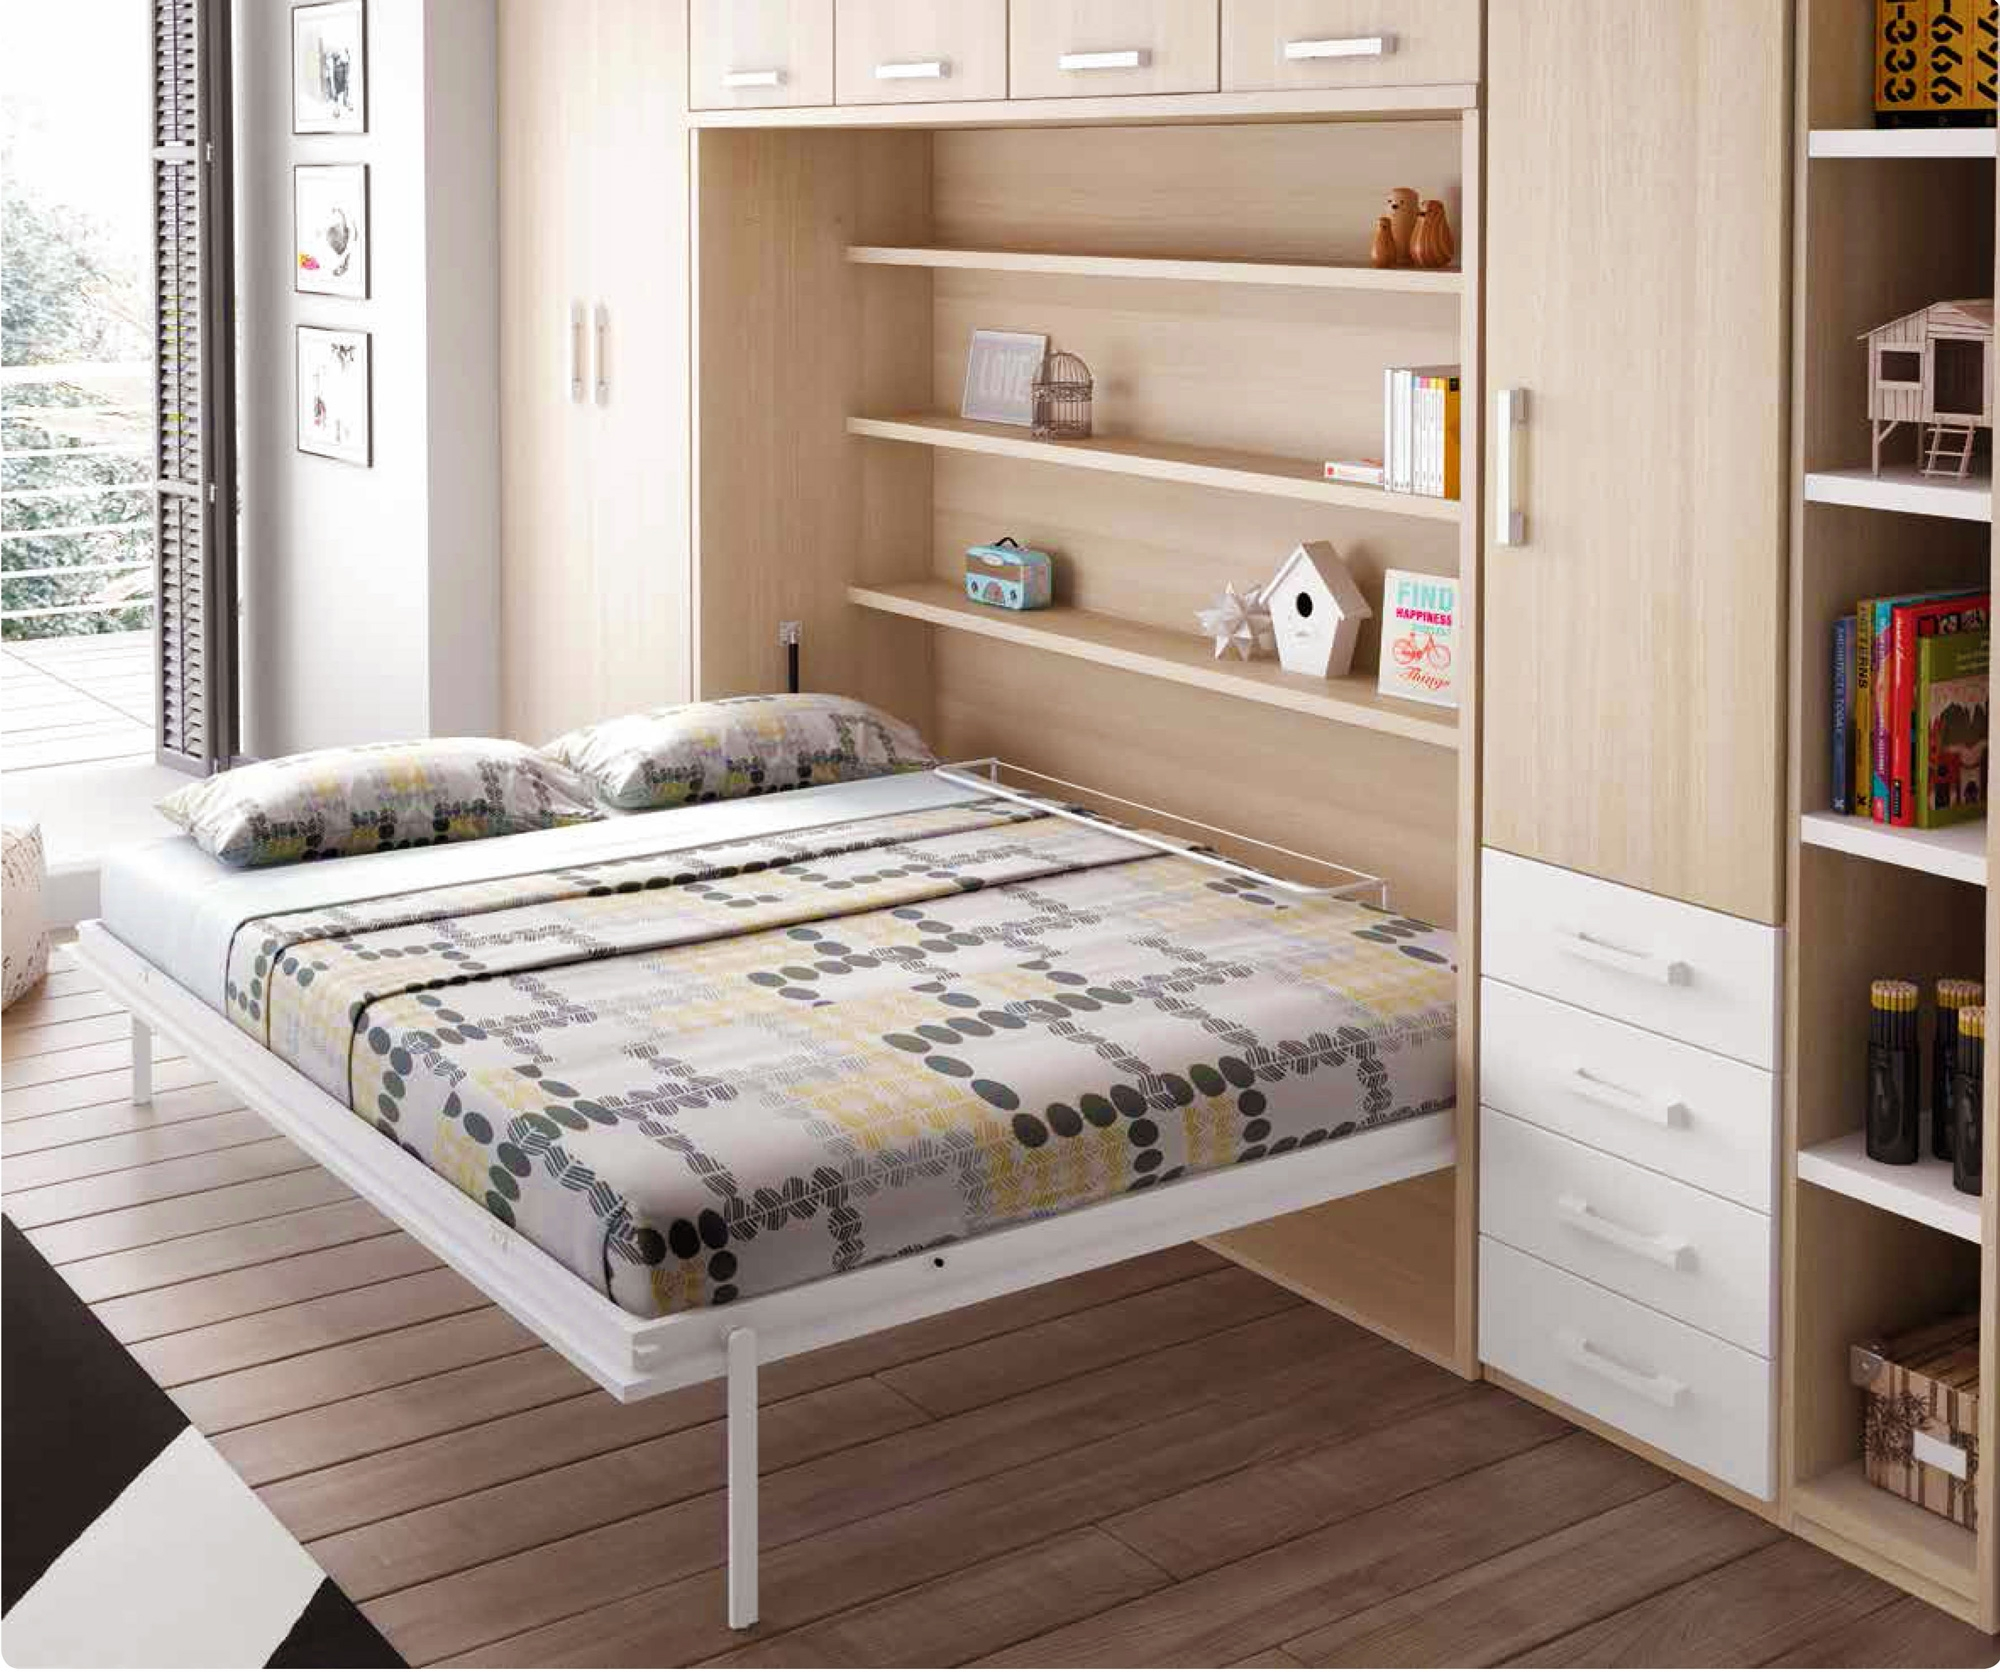 chambre avec lit armoire escamotable horizontal glicerio so nuit. Black Bedroom Furniture Sets. Home Design Ideas